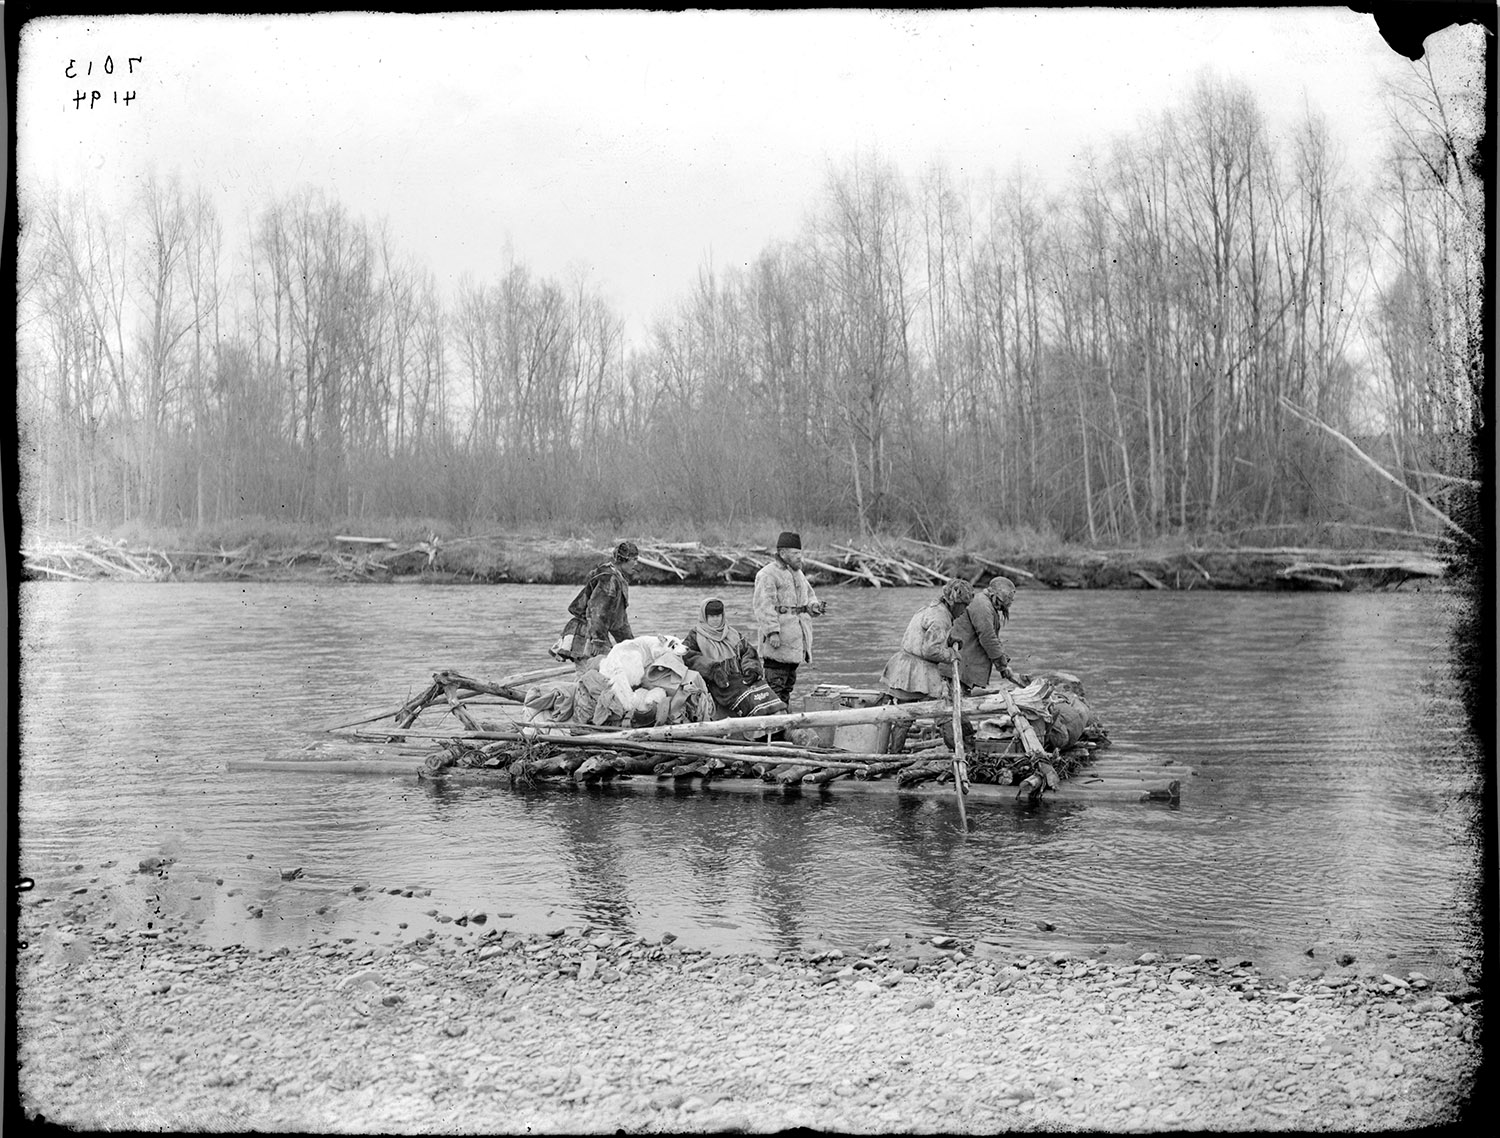 Five adults, a dog and packs of equipment are being carried downstream aboard a raft made from logs and branches tied together.